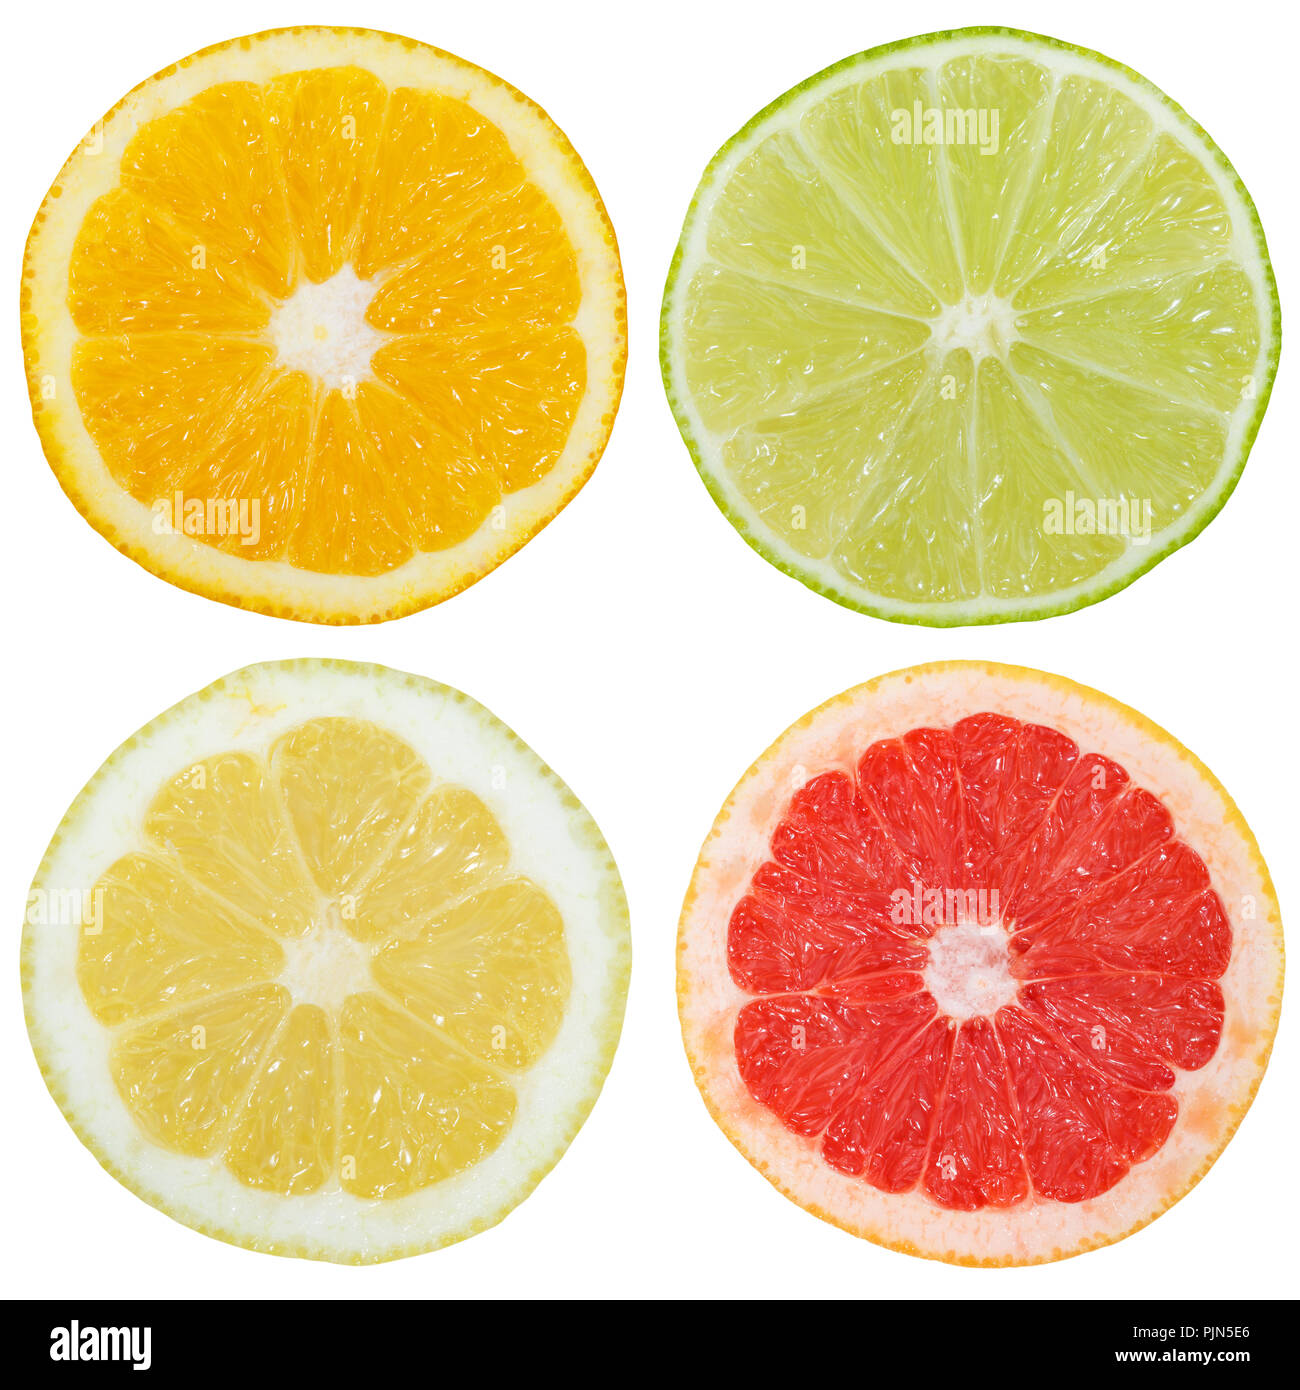 Collection of citrus fruits orange lemon slices sliced square isolated on a white background Stock Photo